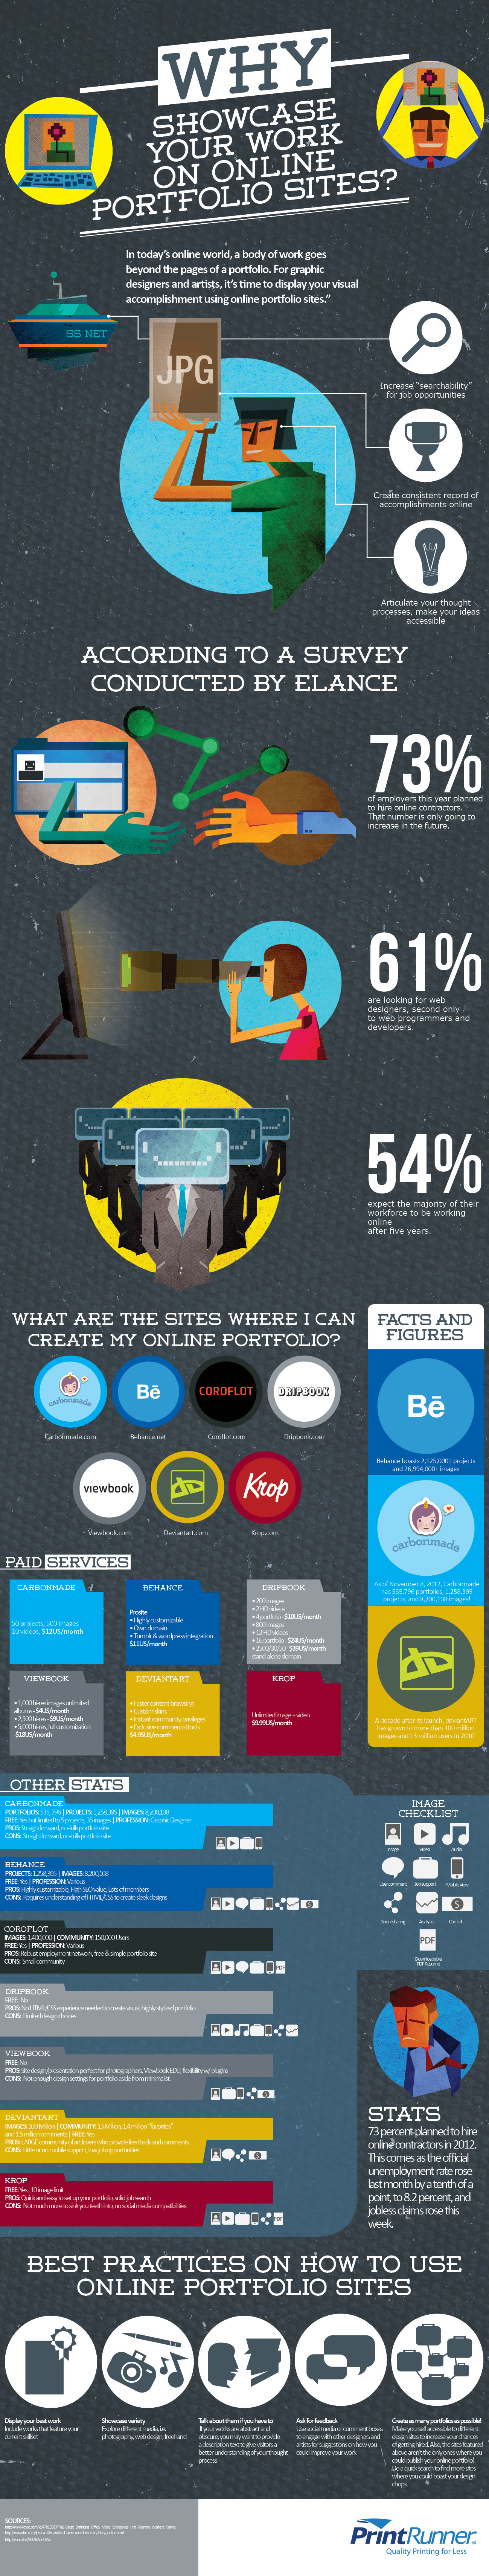 why should you display your work on online portfolio sites and 10 Best Websites to Create Portfolios with infographic